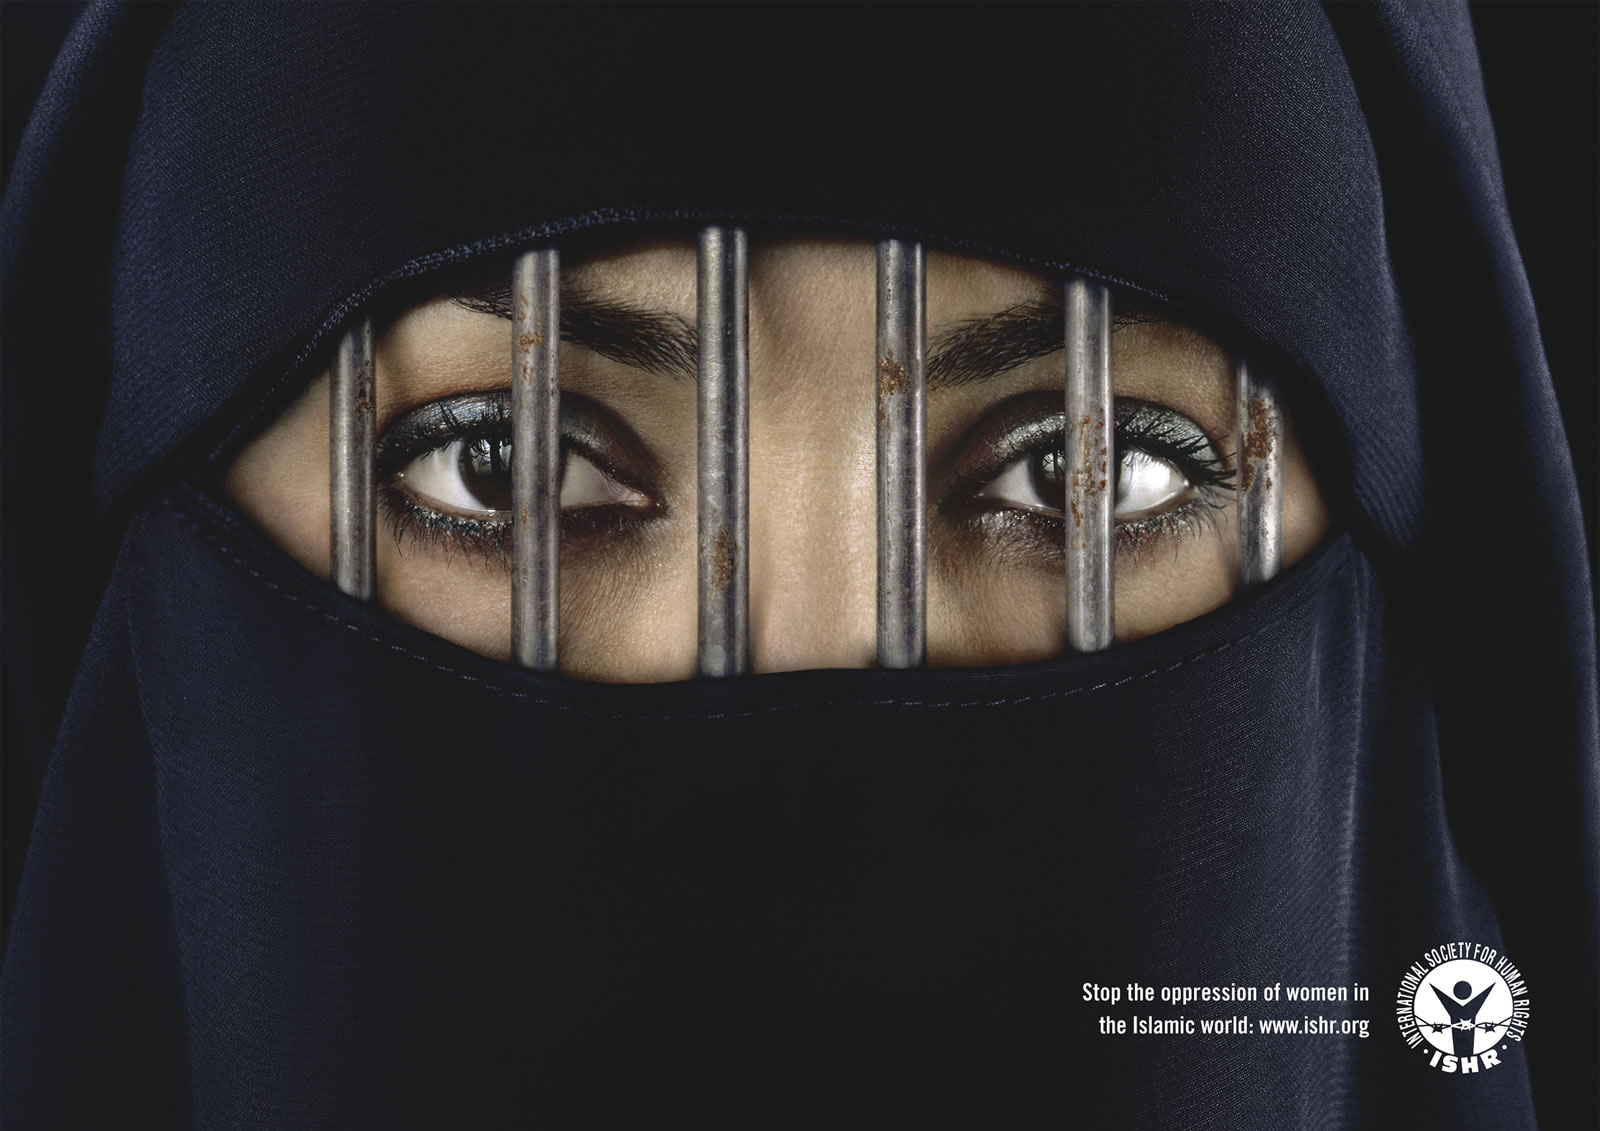 http://blogs.ua.es/guerraafganistan/files/2012/01/burka.jpg